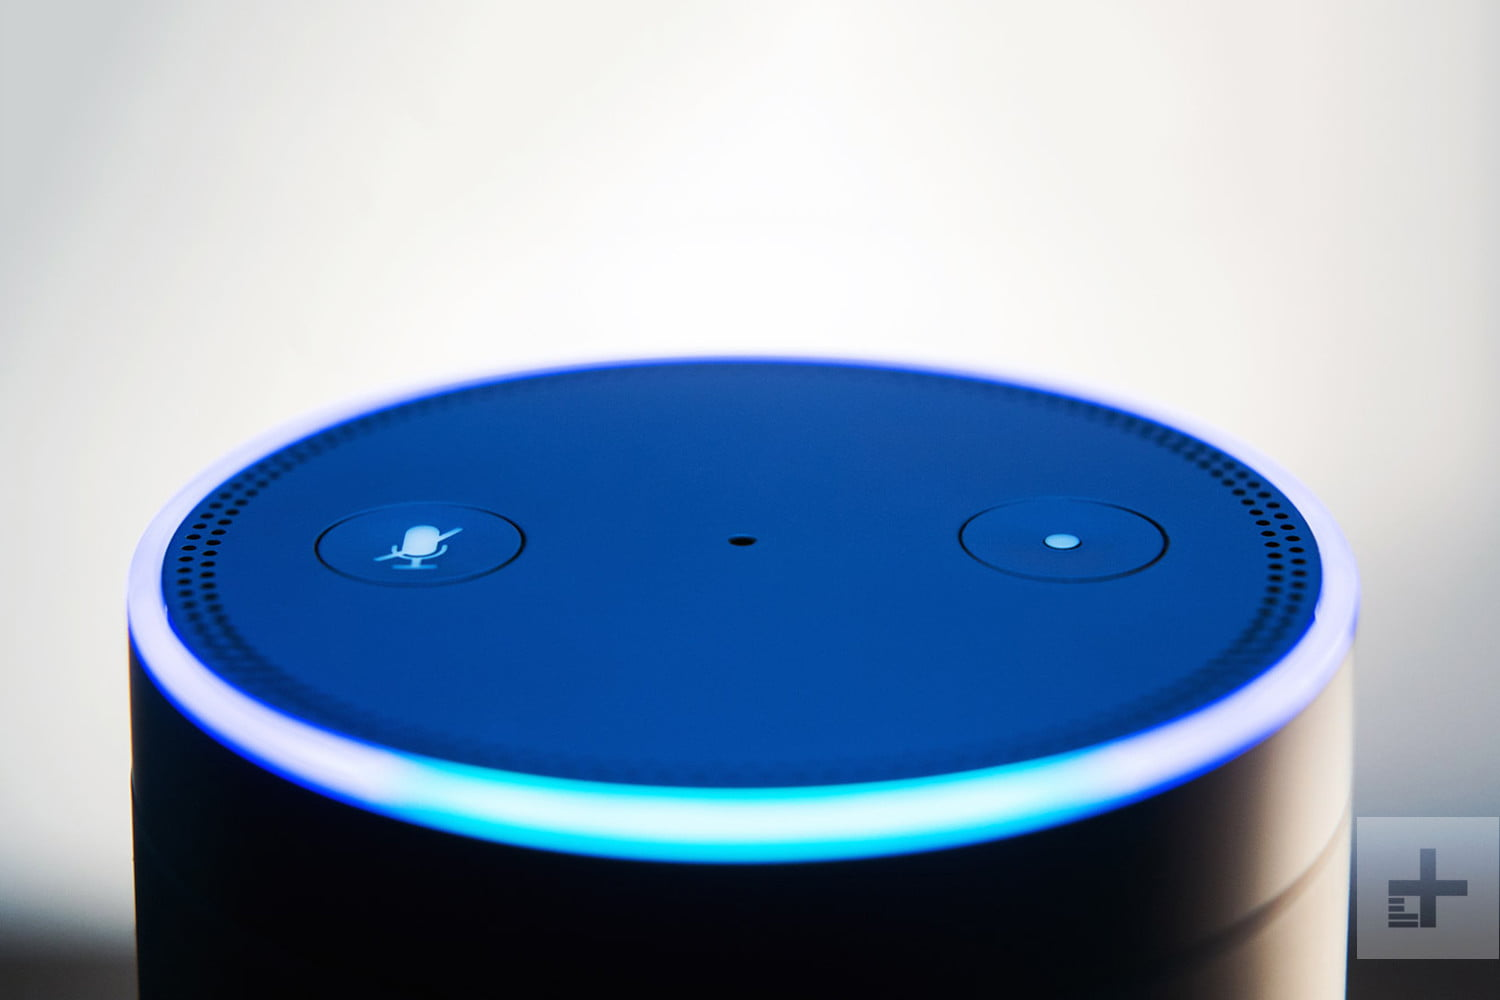 Alexa Commands: Take a Sneak Peek At All the Commands So Far